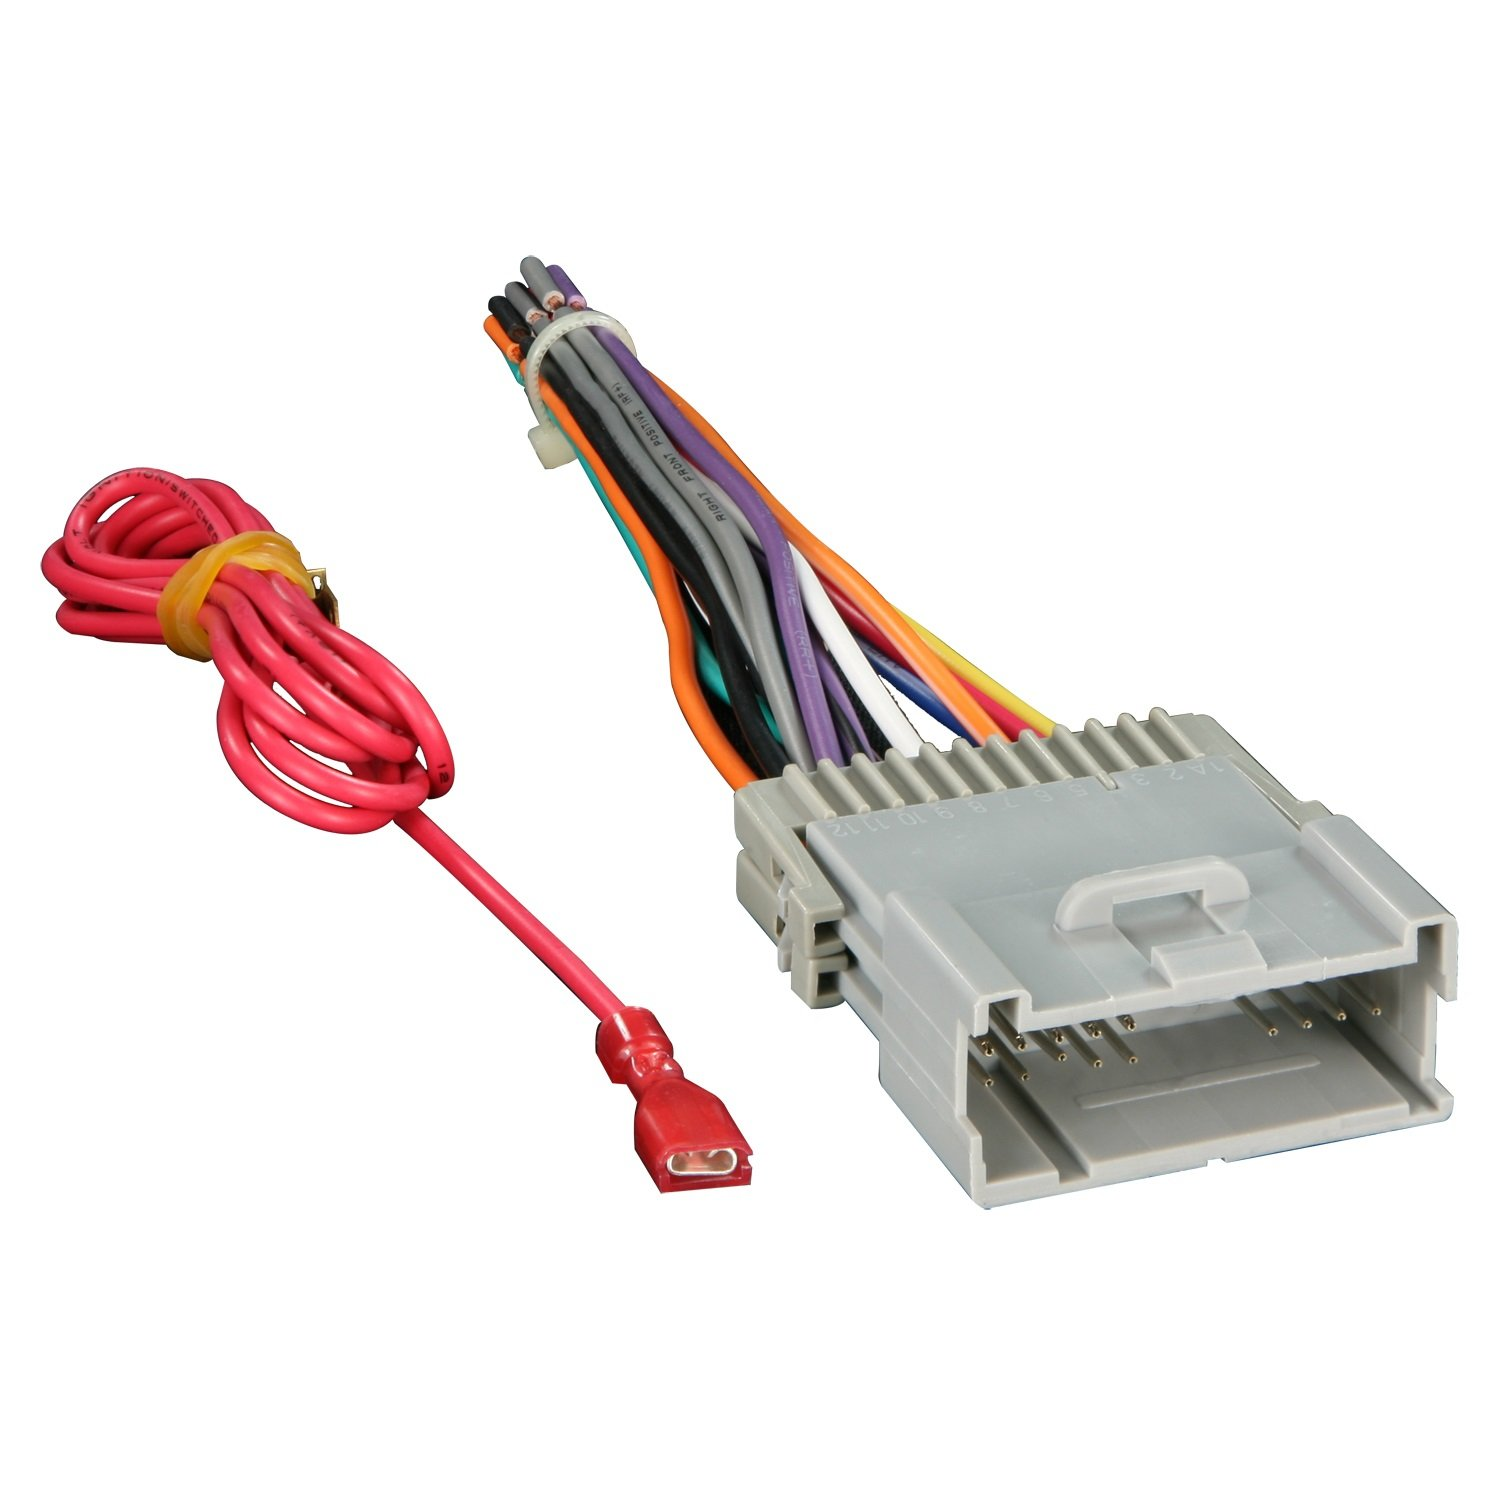 61eewxp9orL._SL1500_ amazon com metra 70 2003 radio wiring harness for gm 98 08 jvc wiring harness color coating at edmiracle.co